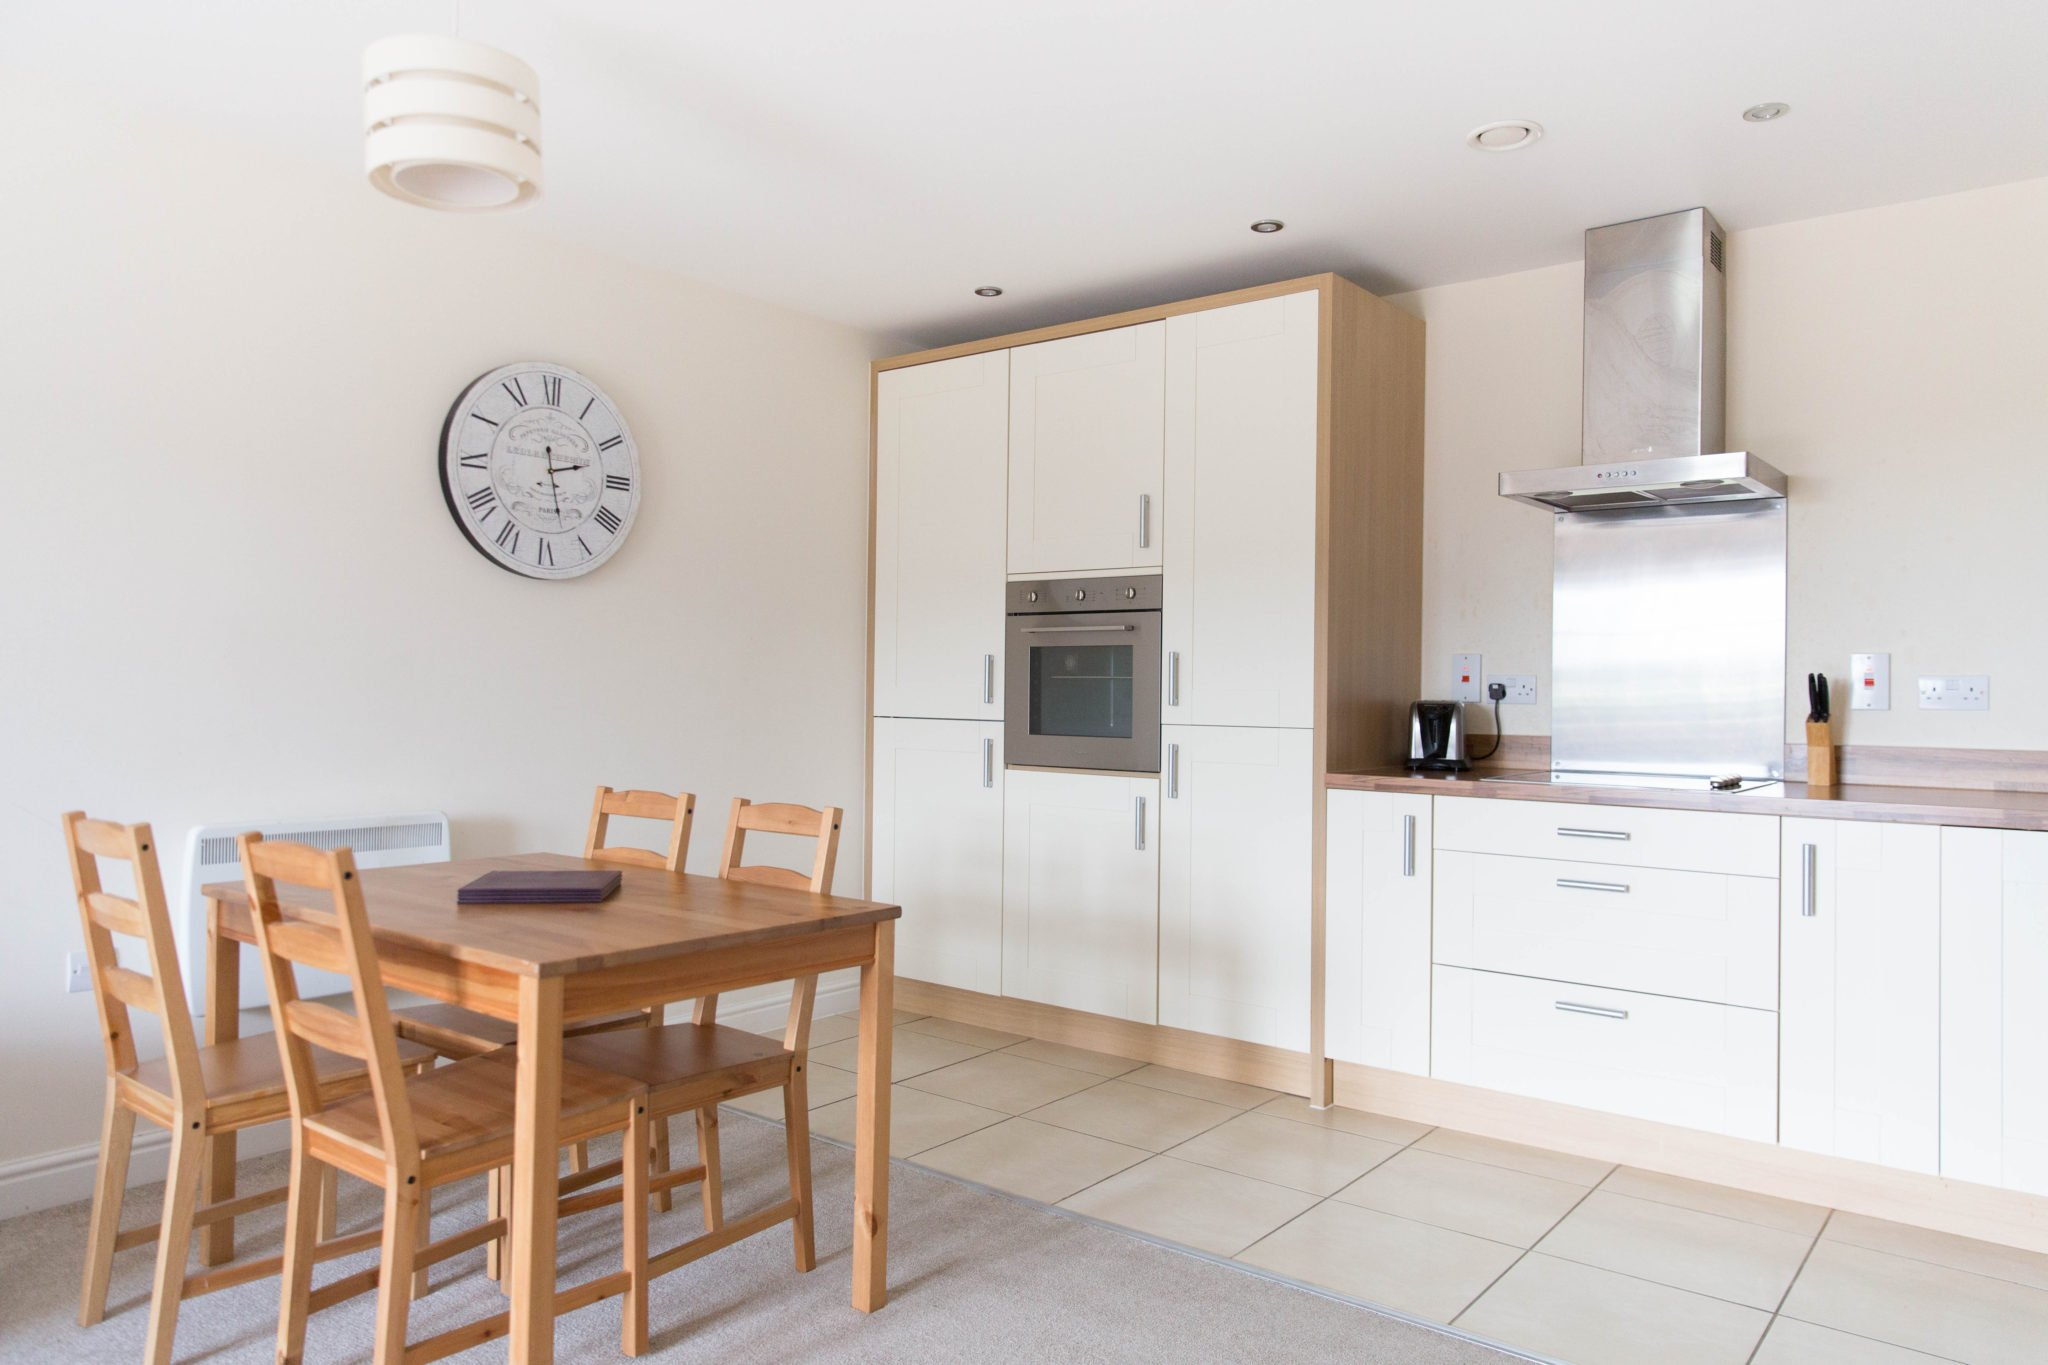 Farnborough-Serviced-Apartments-Hampshire-|-Serviced-Corporate-Accommodation-Farnborough-Airport-|-Cheaper-than-hotels-&-more-space-|-BEST-RATES---BOOK-NOW